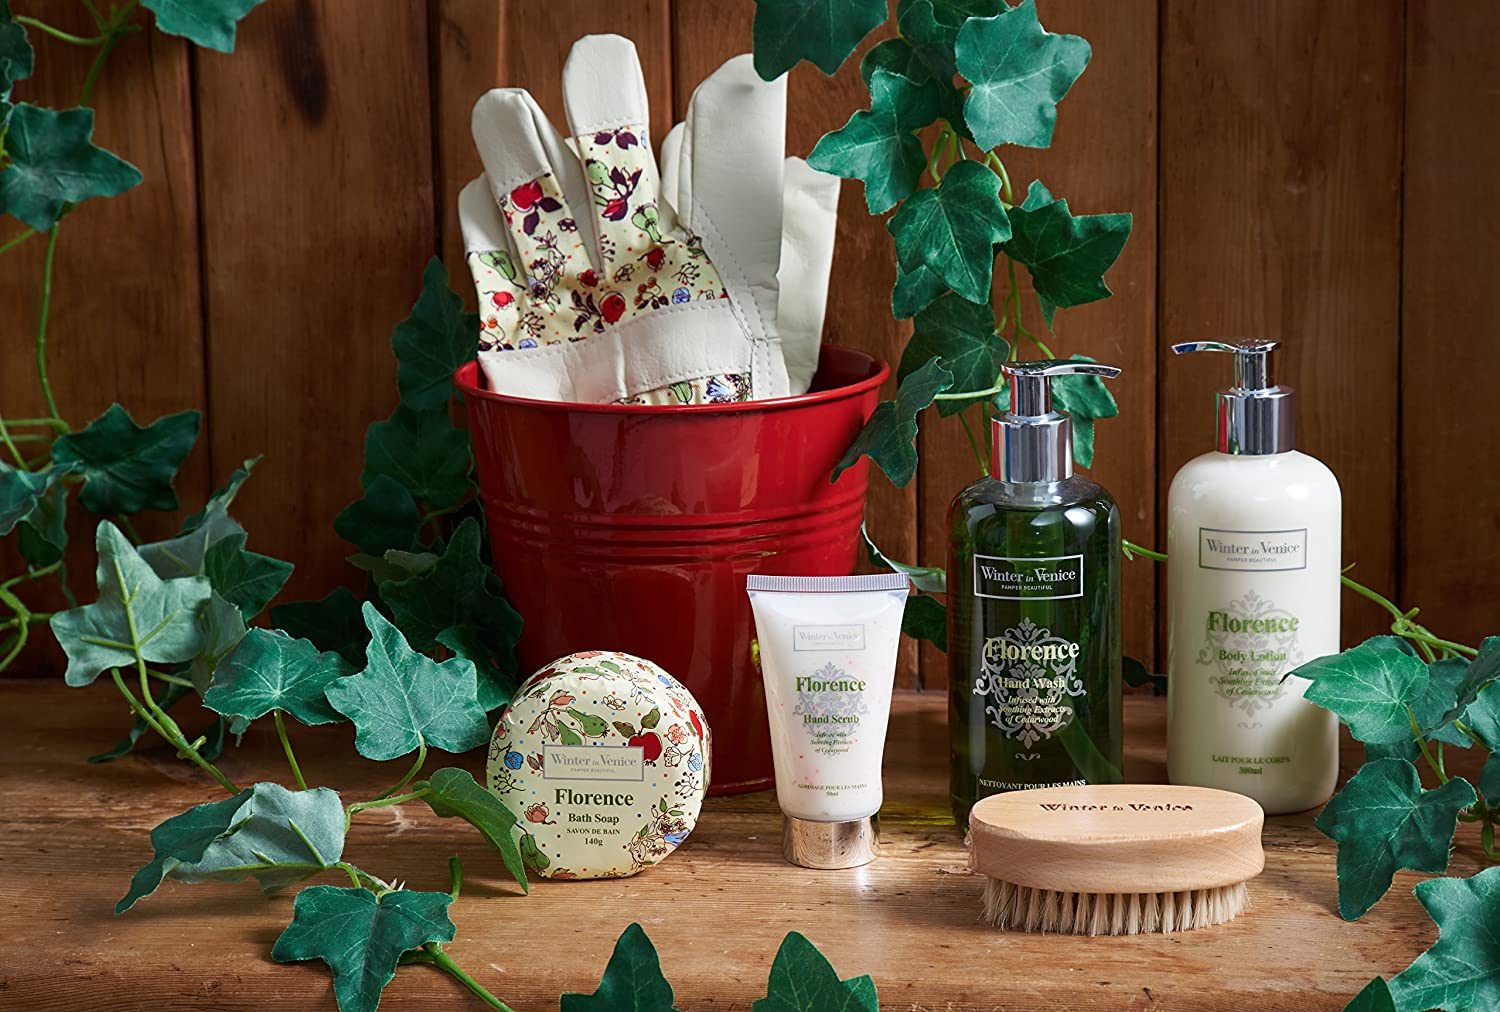 Red Florence Pot Spa Beauty Gift Set